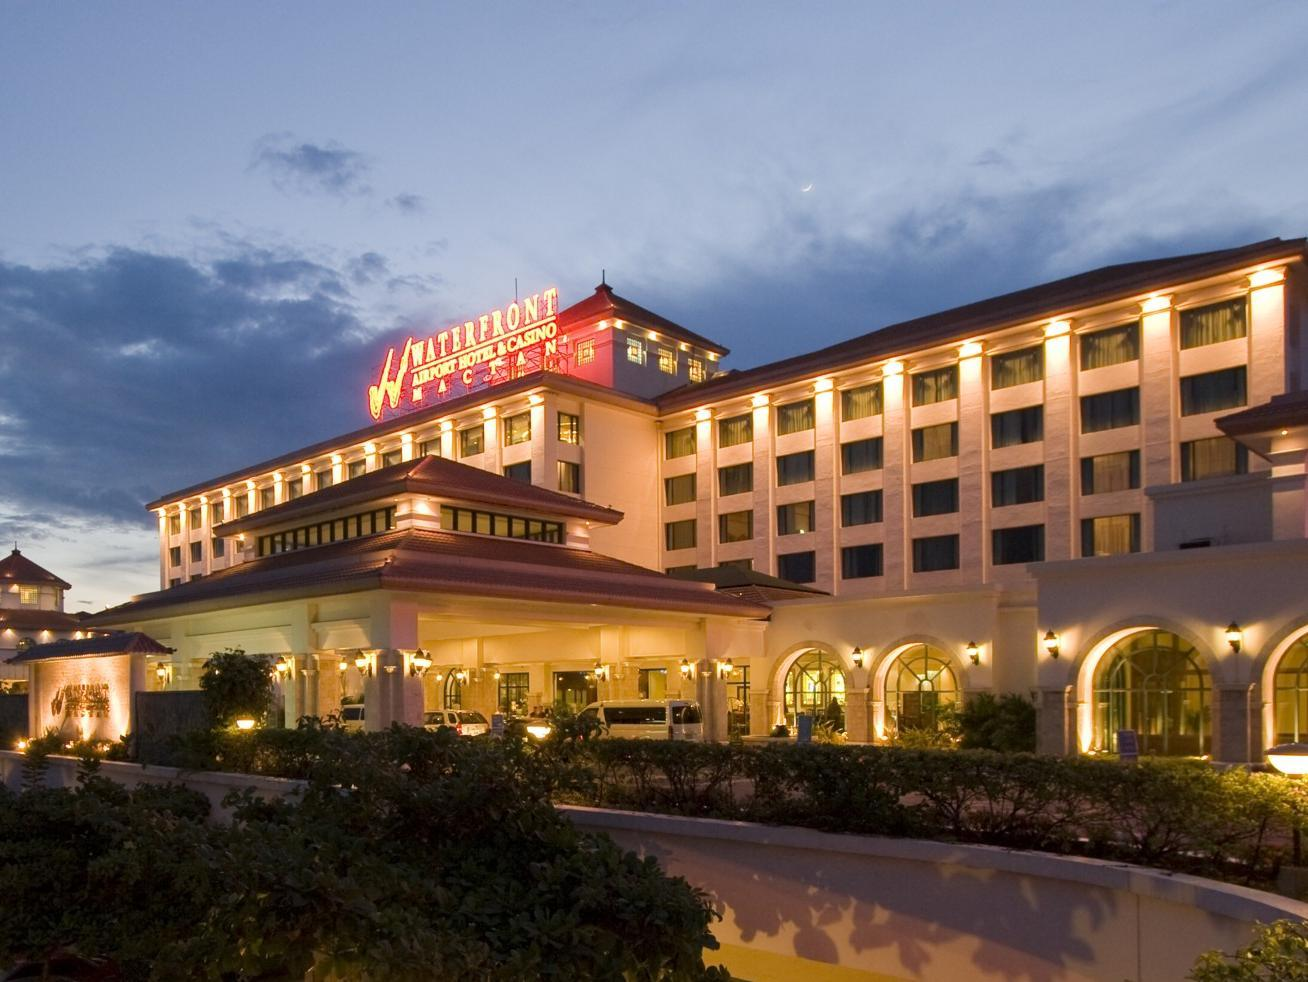 Waterfront Airport Hotel and Casino Cebu - Extérieur de l'hôtel